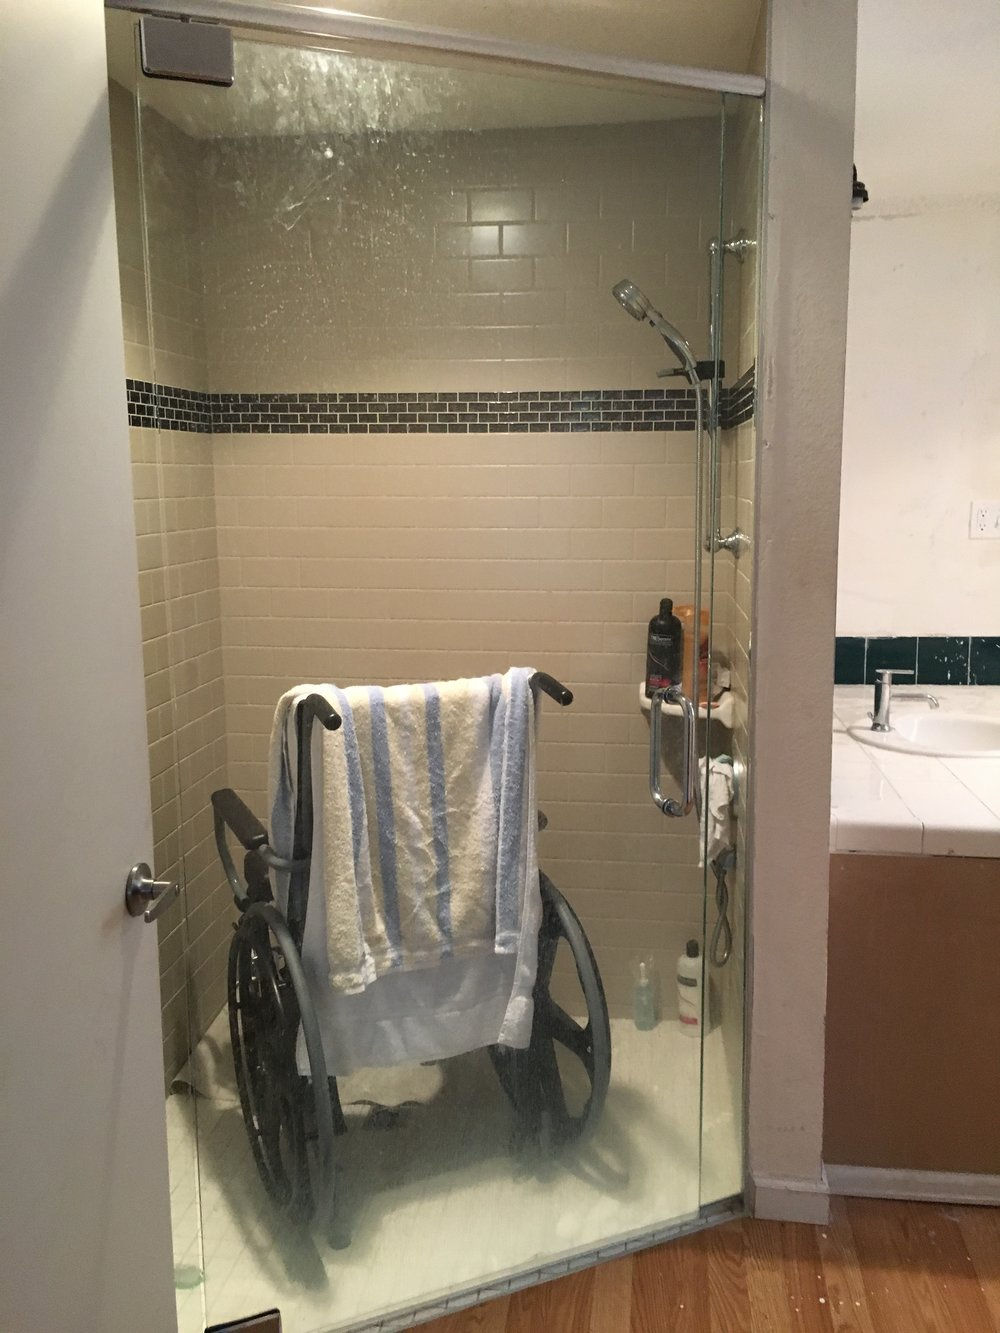 Home Builders Foundation roll-in shower